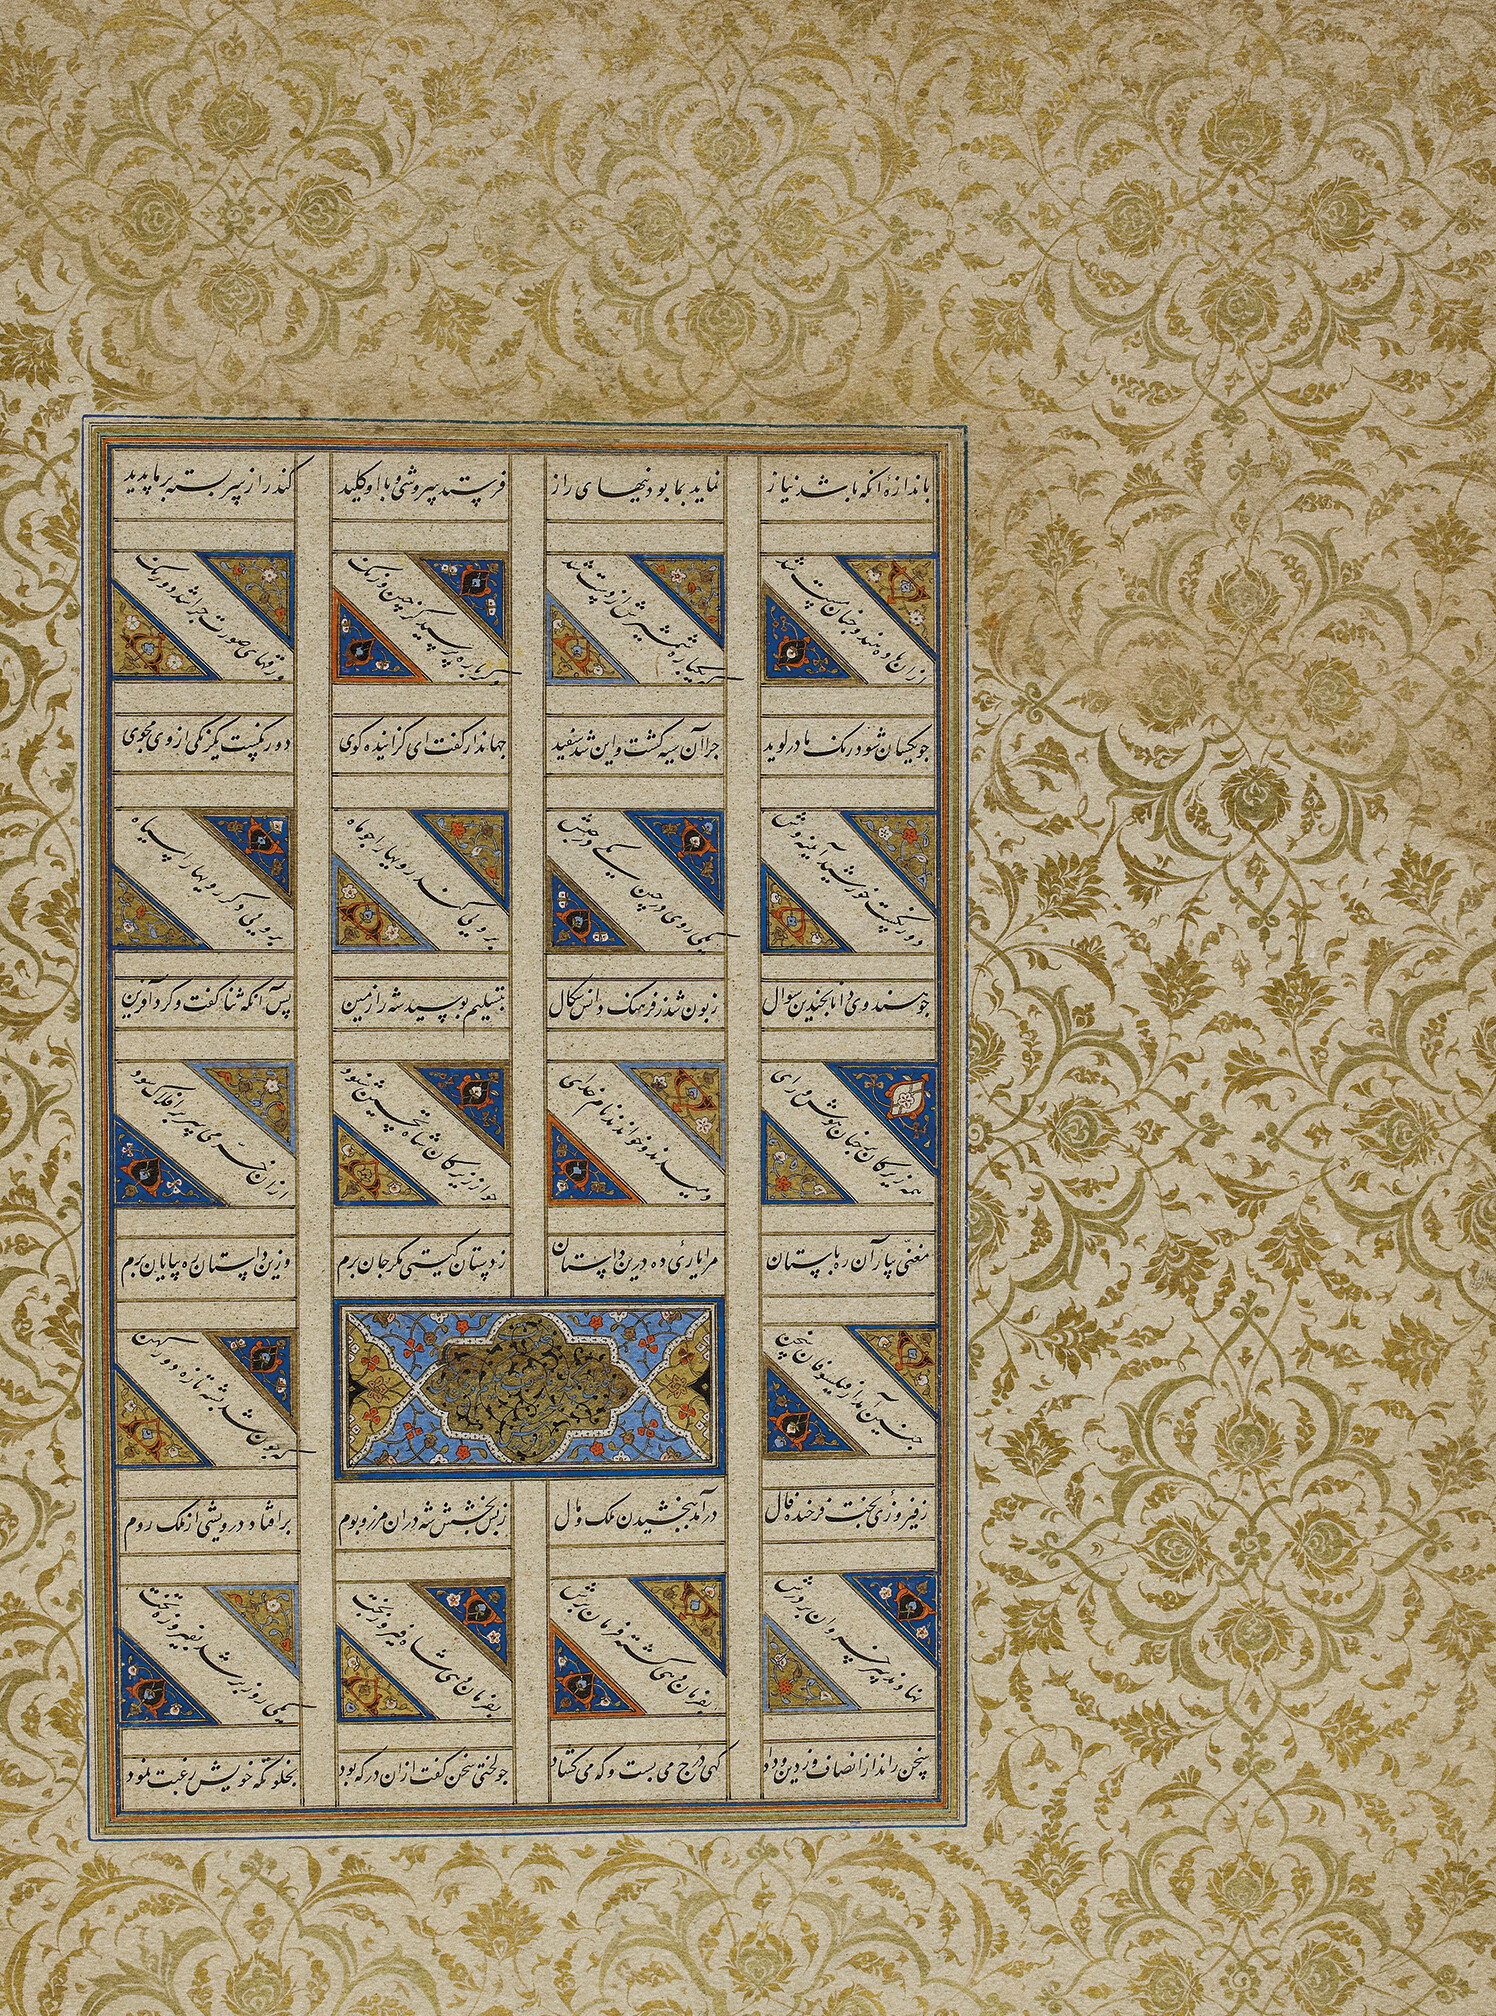 Page of Khamsa manuscript with flowers in border